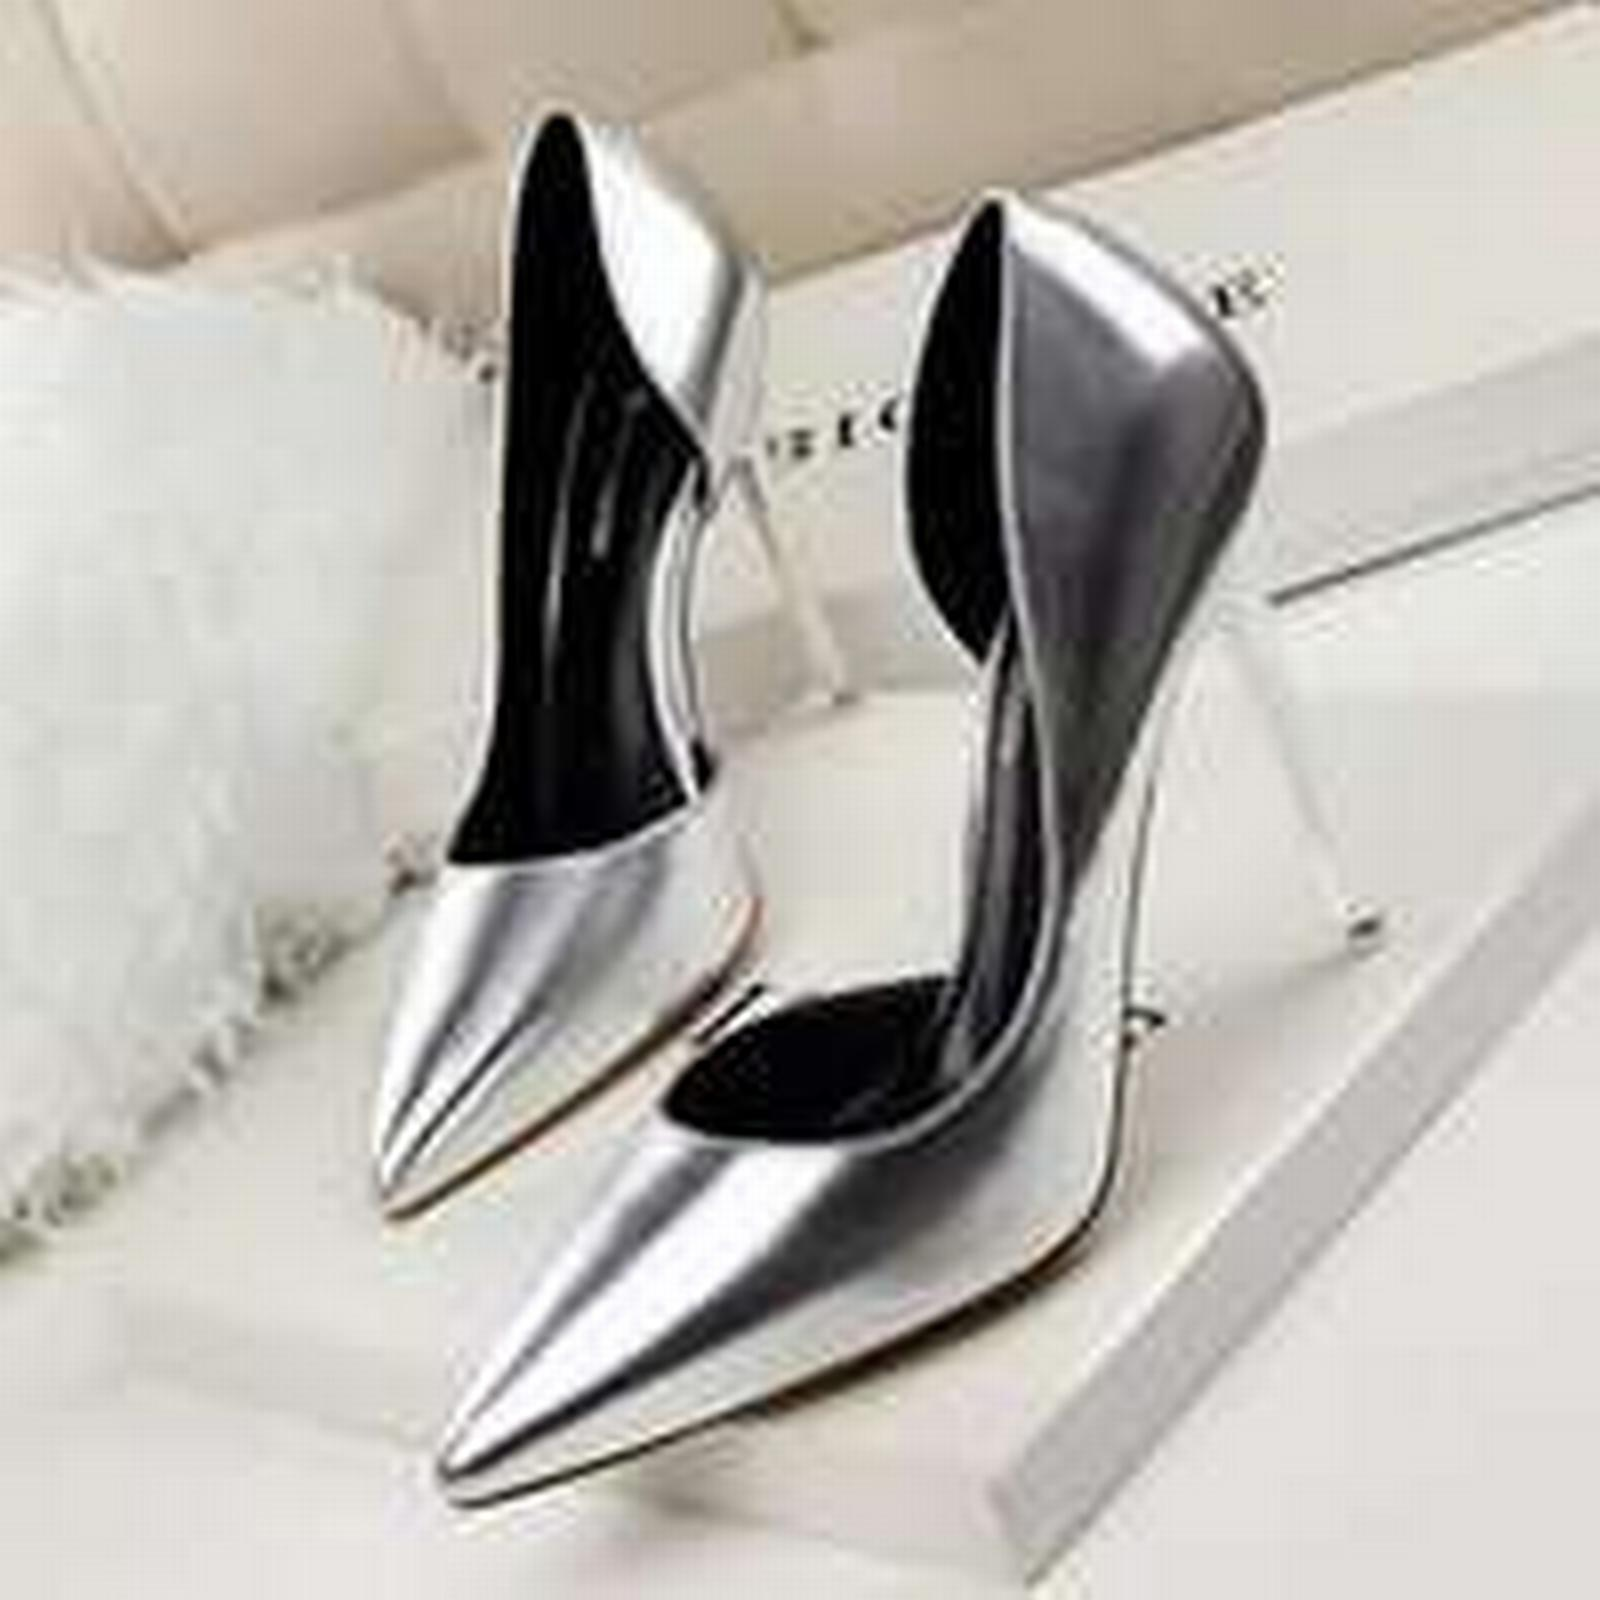 Bonanza color (Global) pp253 stunning gradient color Bonanza pointy pump, patent leather, US Size 4-8, silver 96cb72